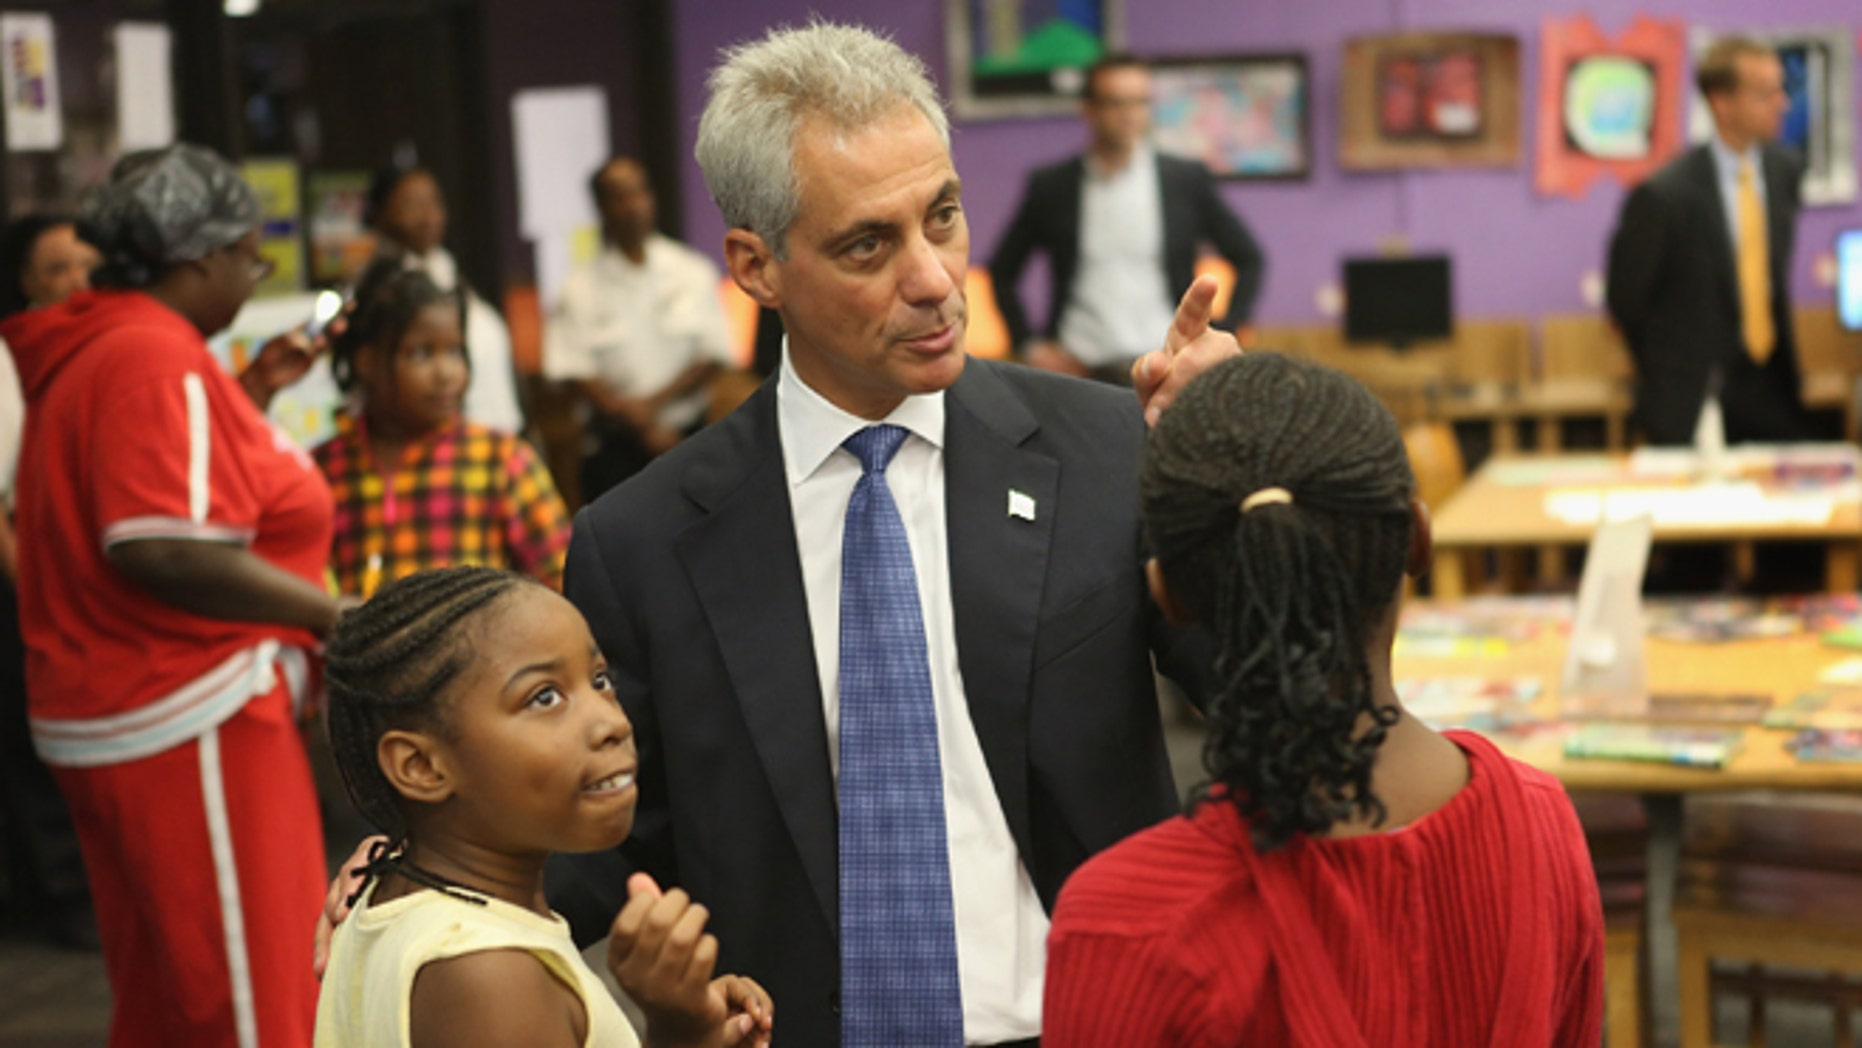 CHICAGO, IL - SEPTEMBER 10:  Mayor Rahm Emanuel (2nd R) visits Chicago Public School children at Woodson Regional Library in Chicago, Illinois. (Photo by Scott Olson/Getty Images)